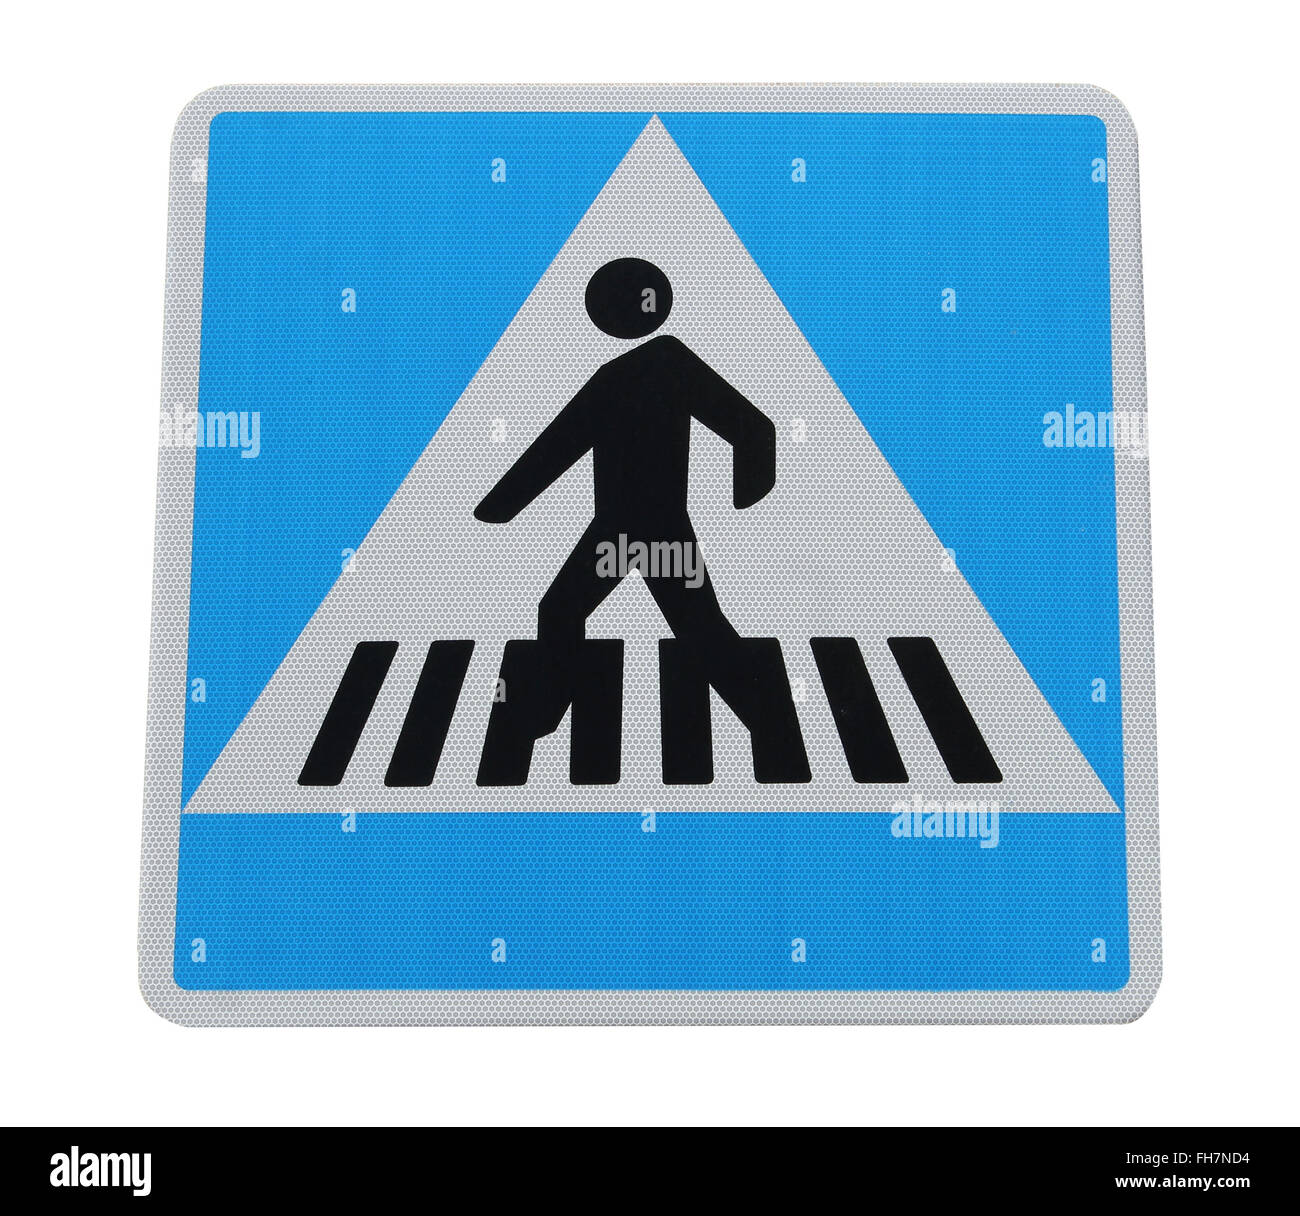 Pedestrian crossing sign isolated on a white background. - Stock Image